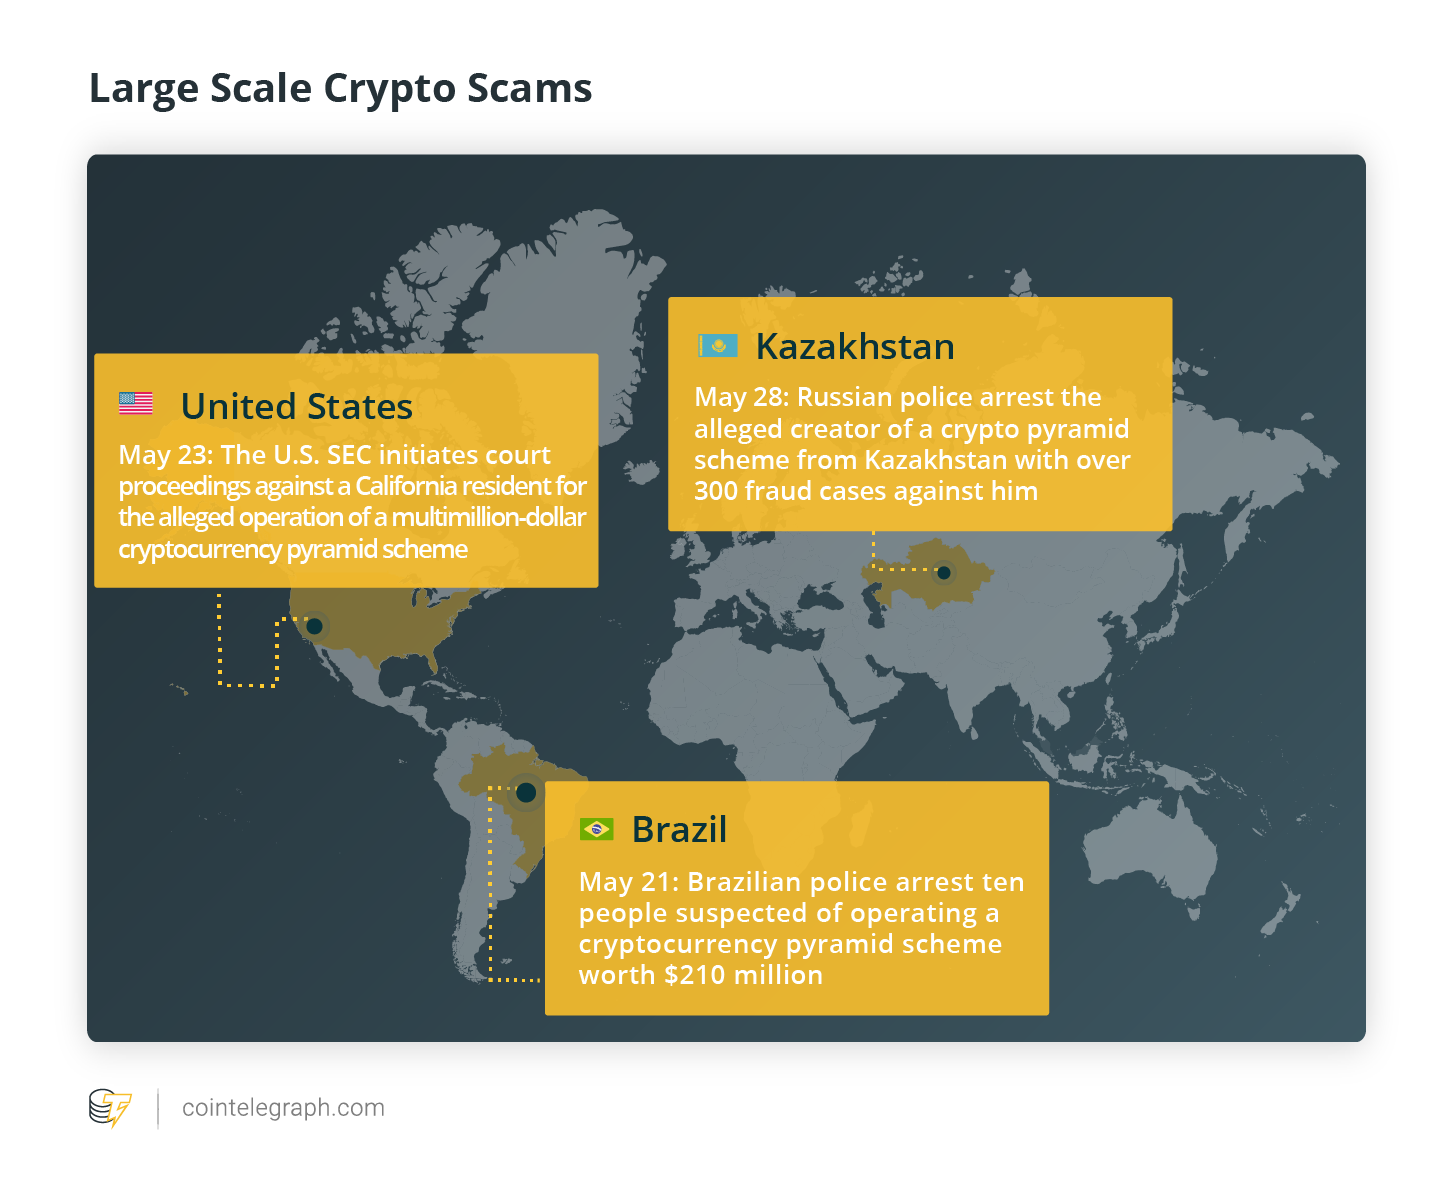 Large Scale Crypto Scams